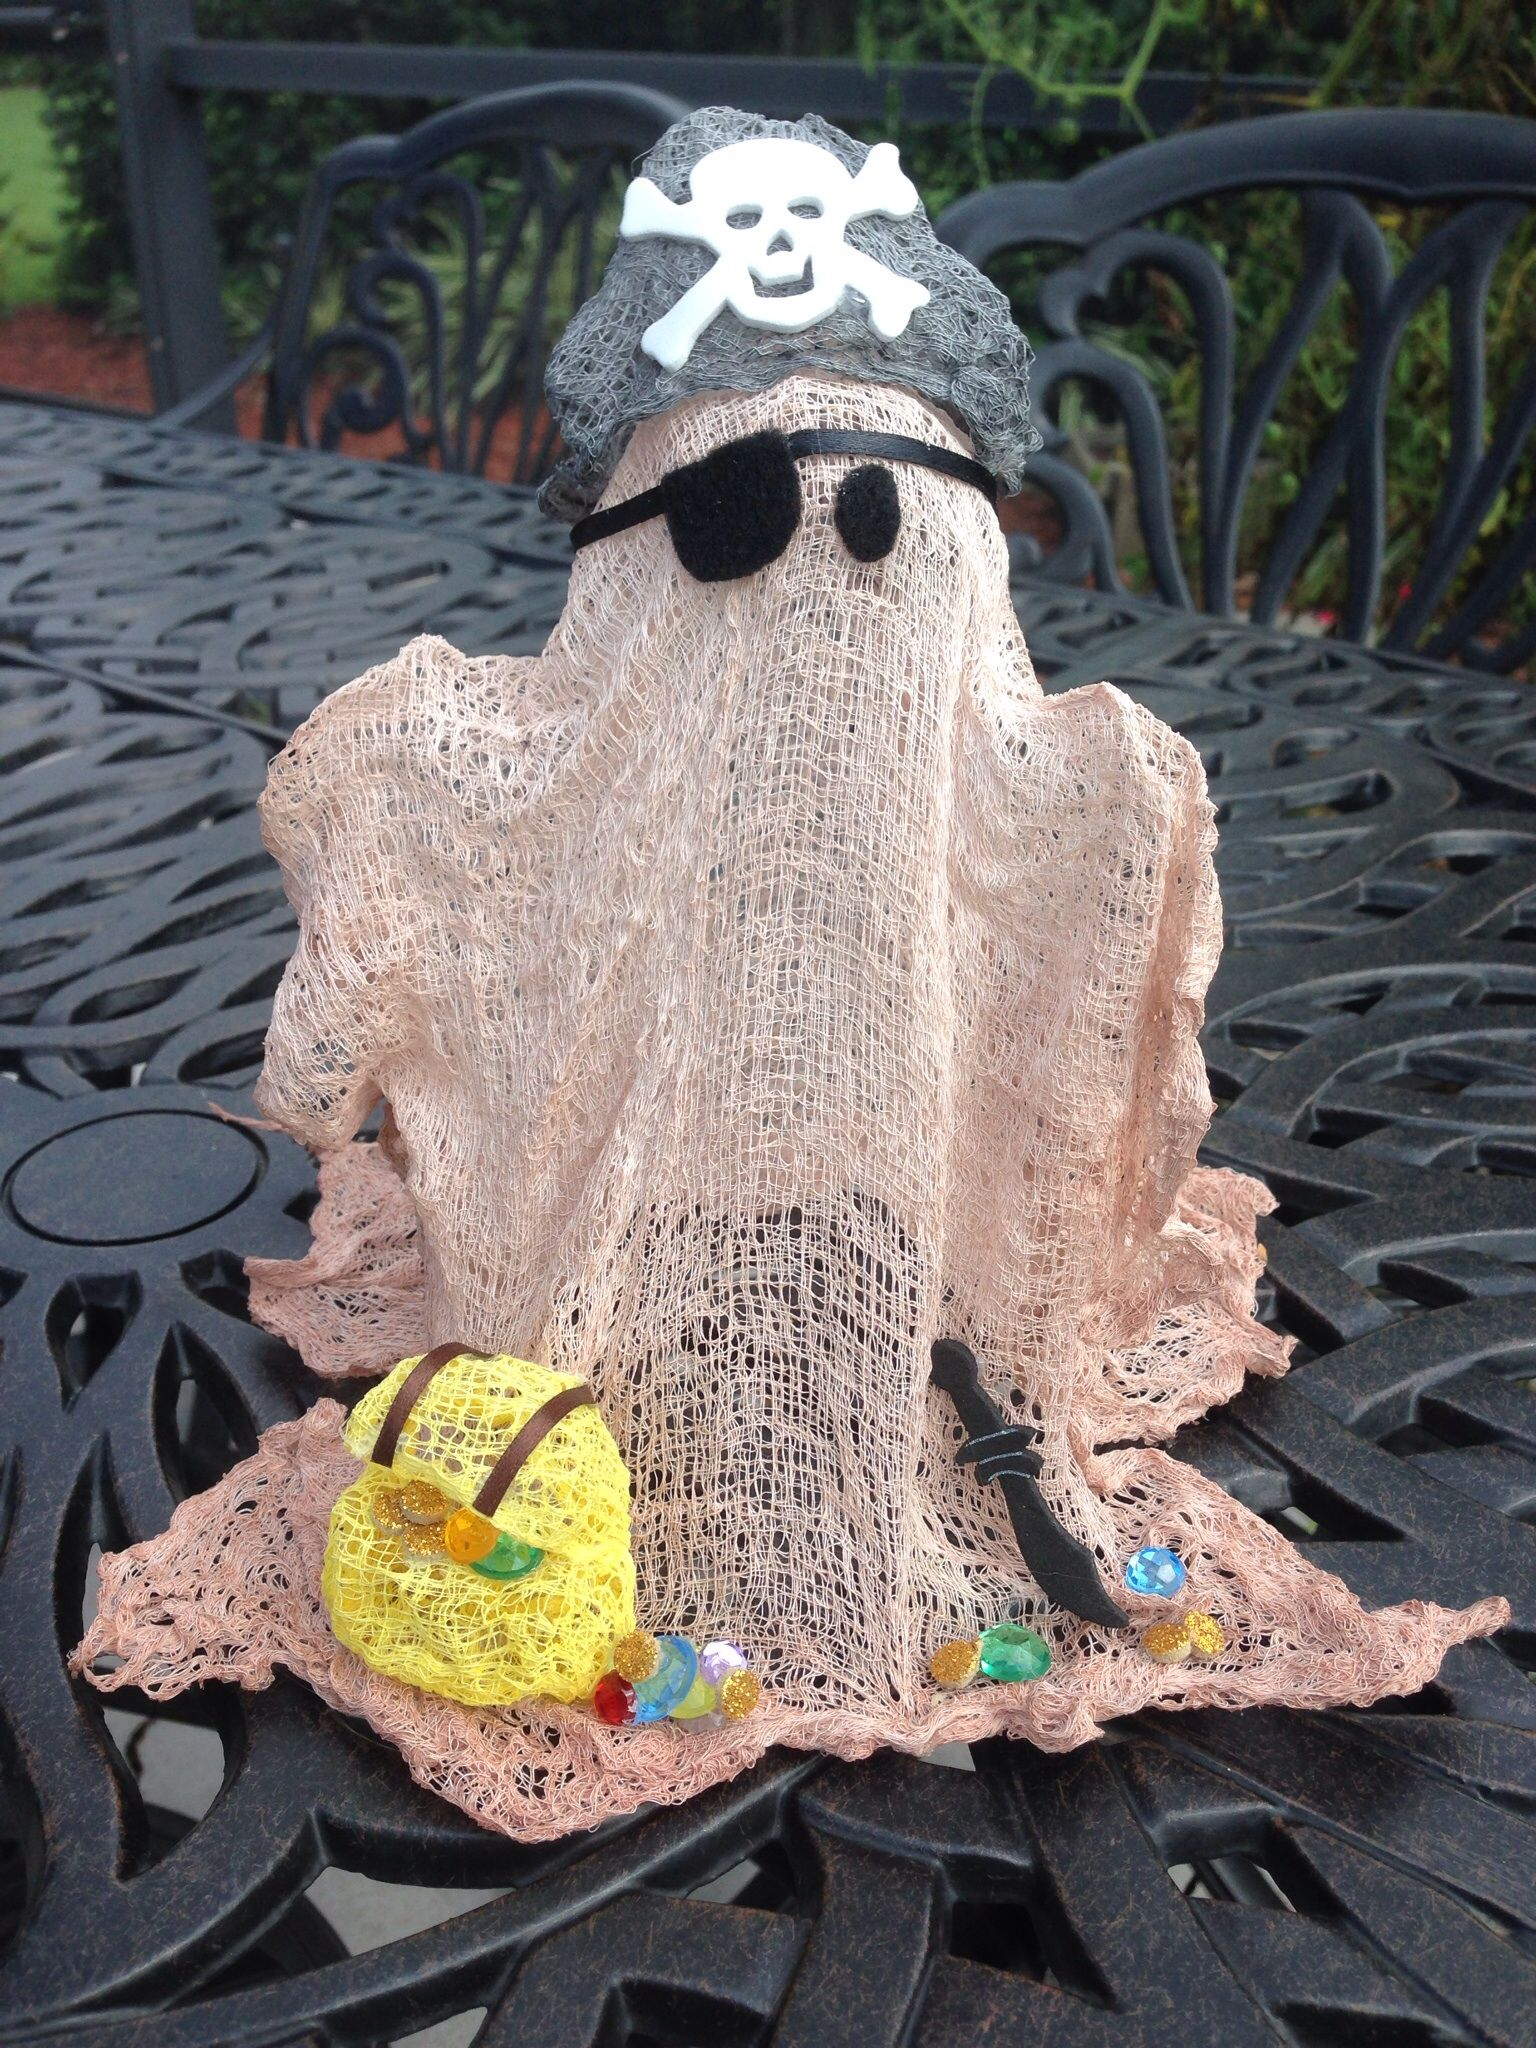 Pirate Ghost from Cheesecloth Halloween Ghost Decorations - Halloween Ghost Decorations